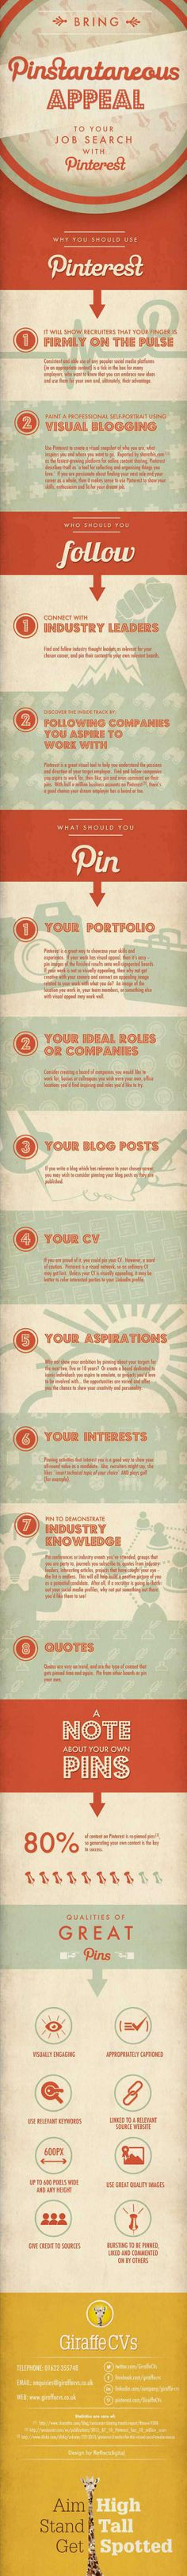 Appeal to your job search with Pinterest #infografia #infographic #socialmedia